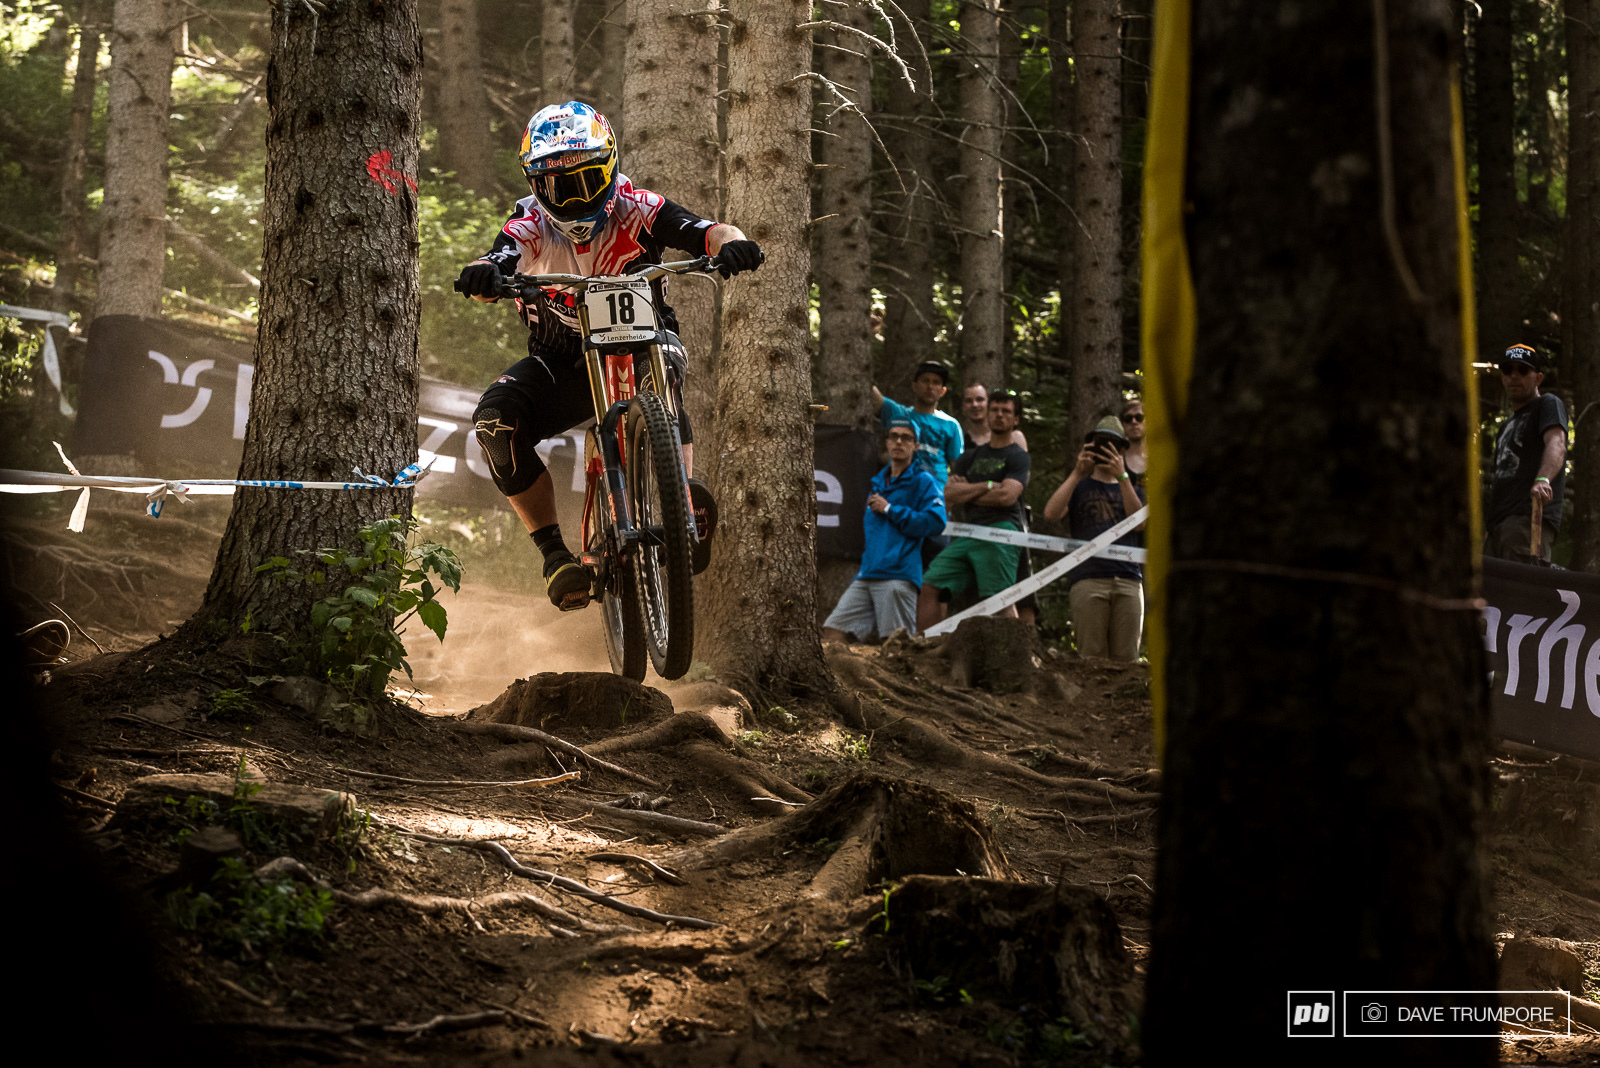 Brooke MacDonald fully committed through the roots and stumps to round out the top 10